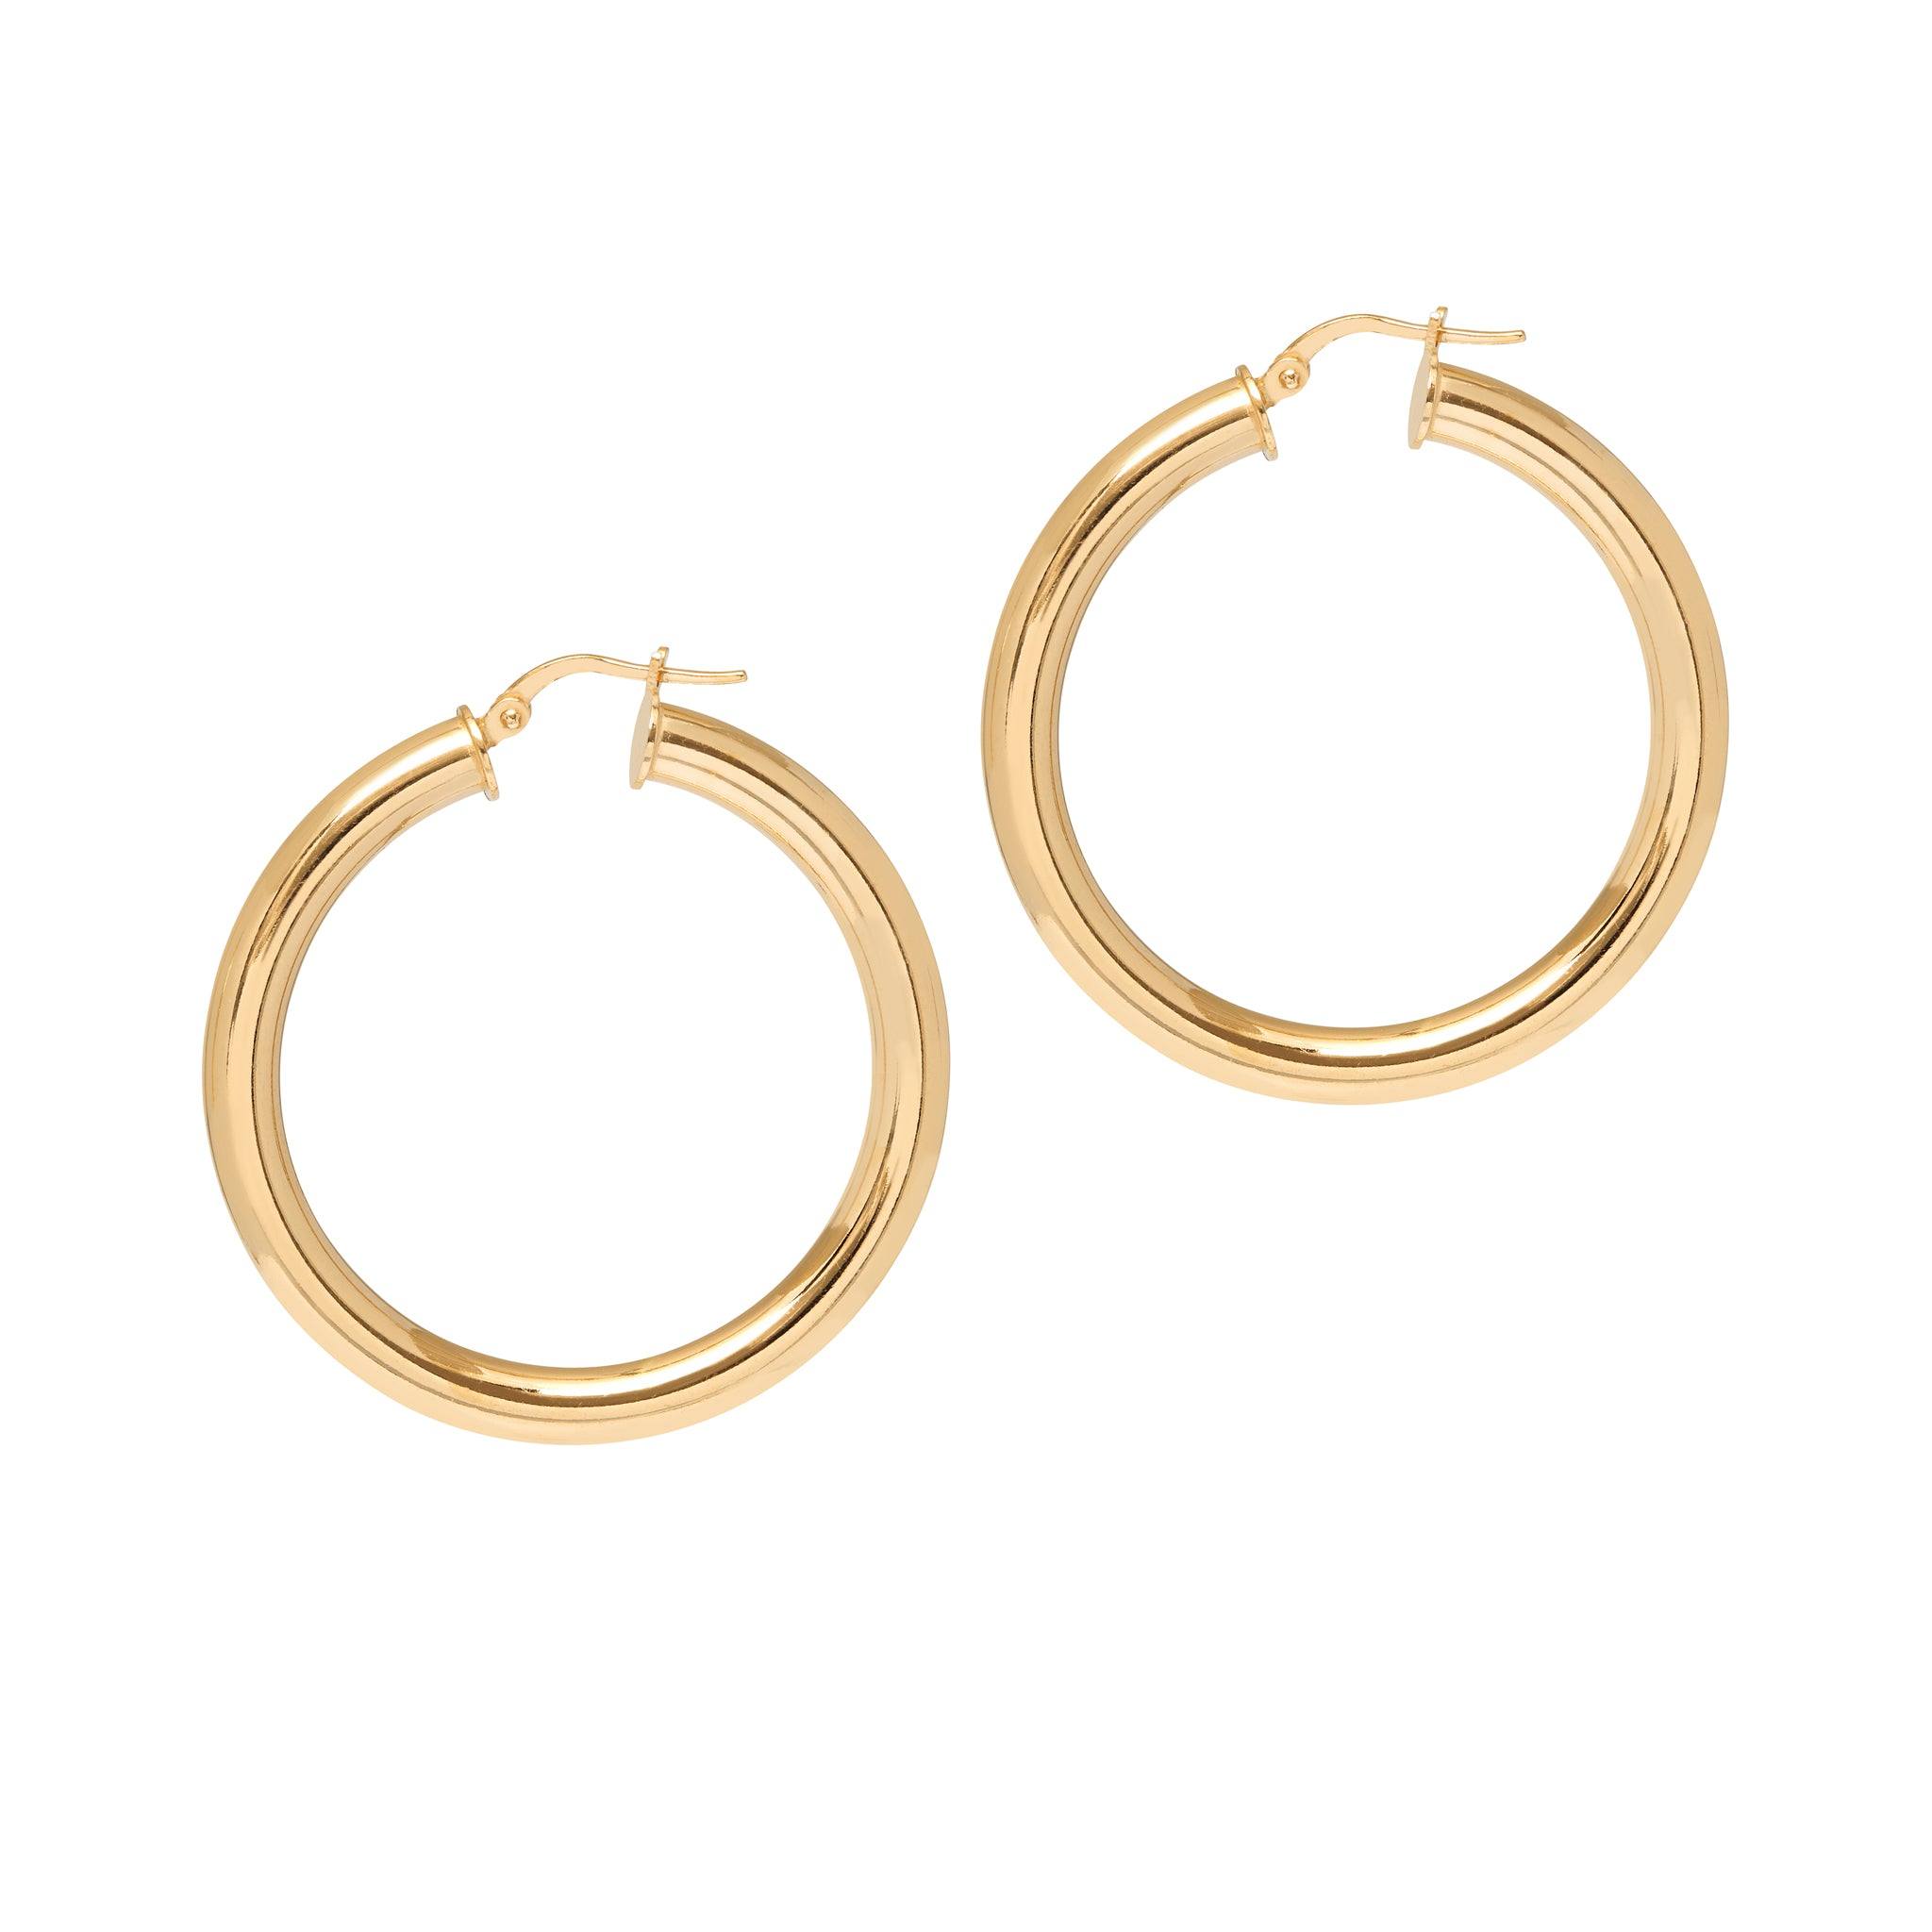 La TUBO - The Hoop Station 925 Sterling Silver Hoop Earrings Gold Huggies